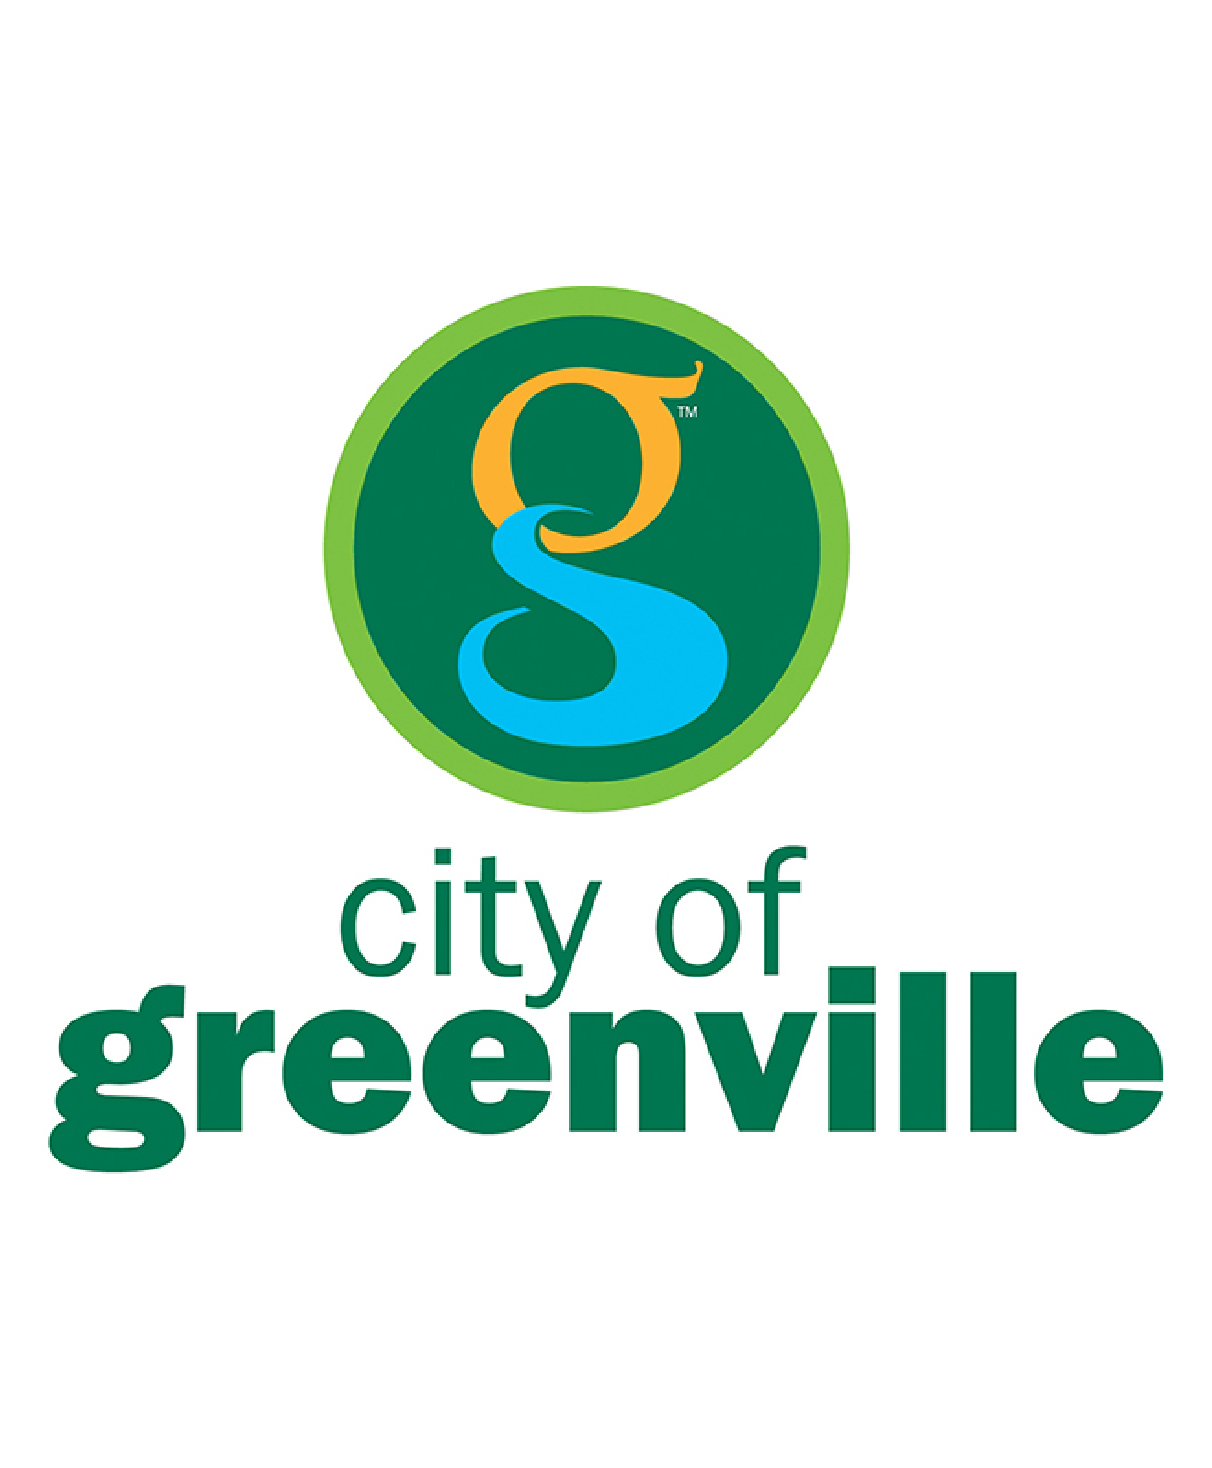 City of Greenville.jpg